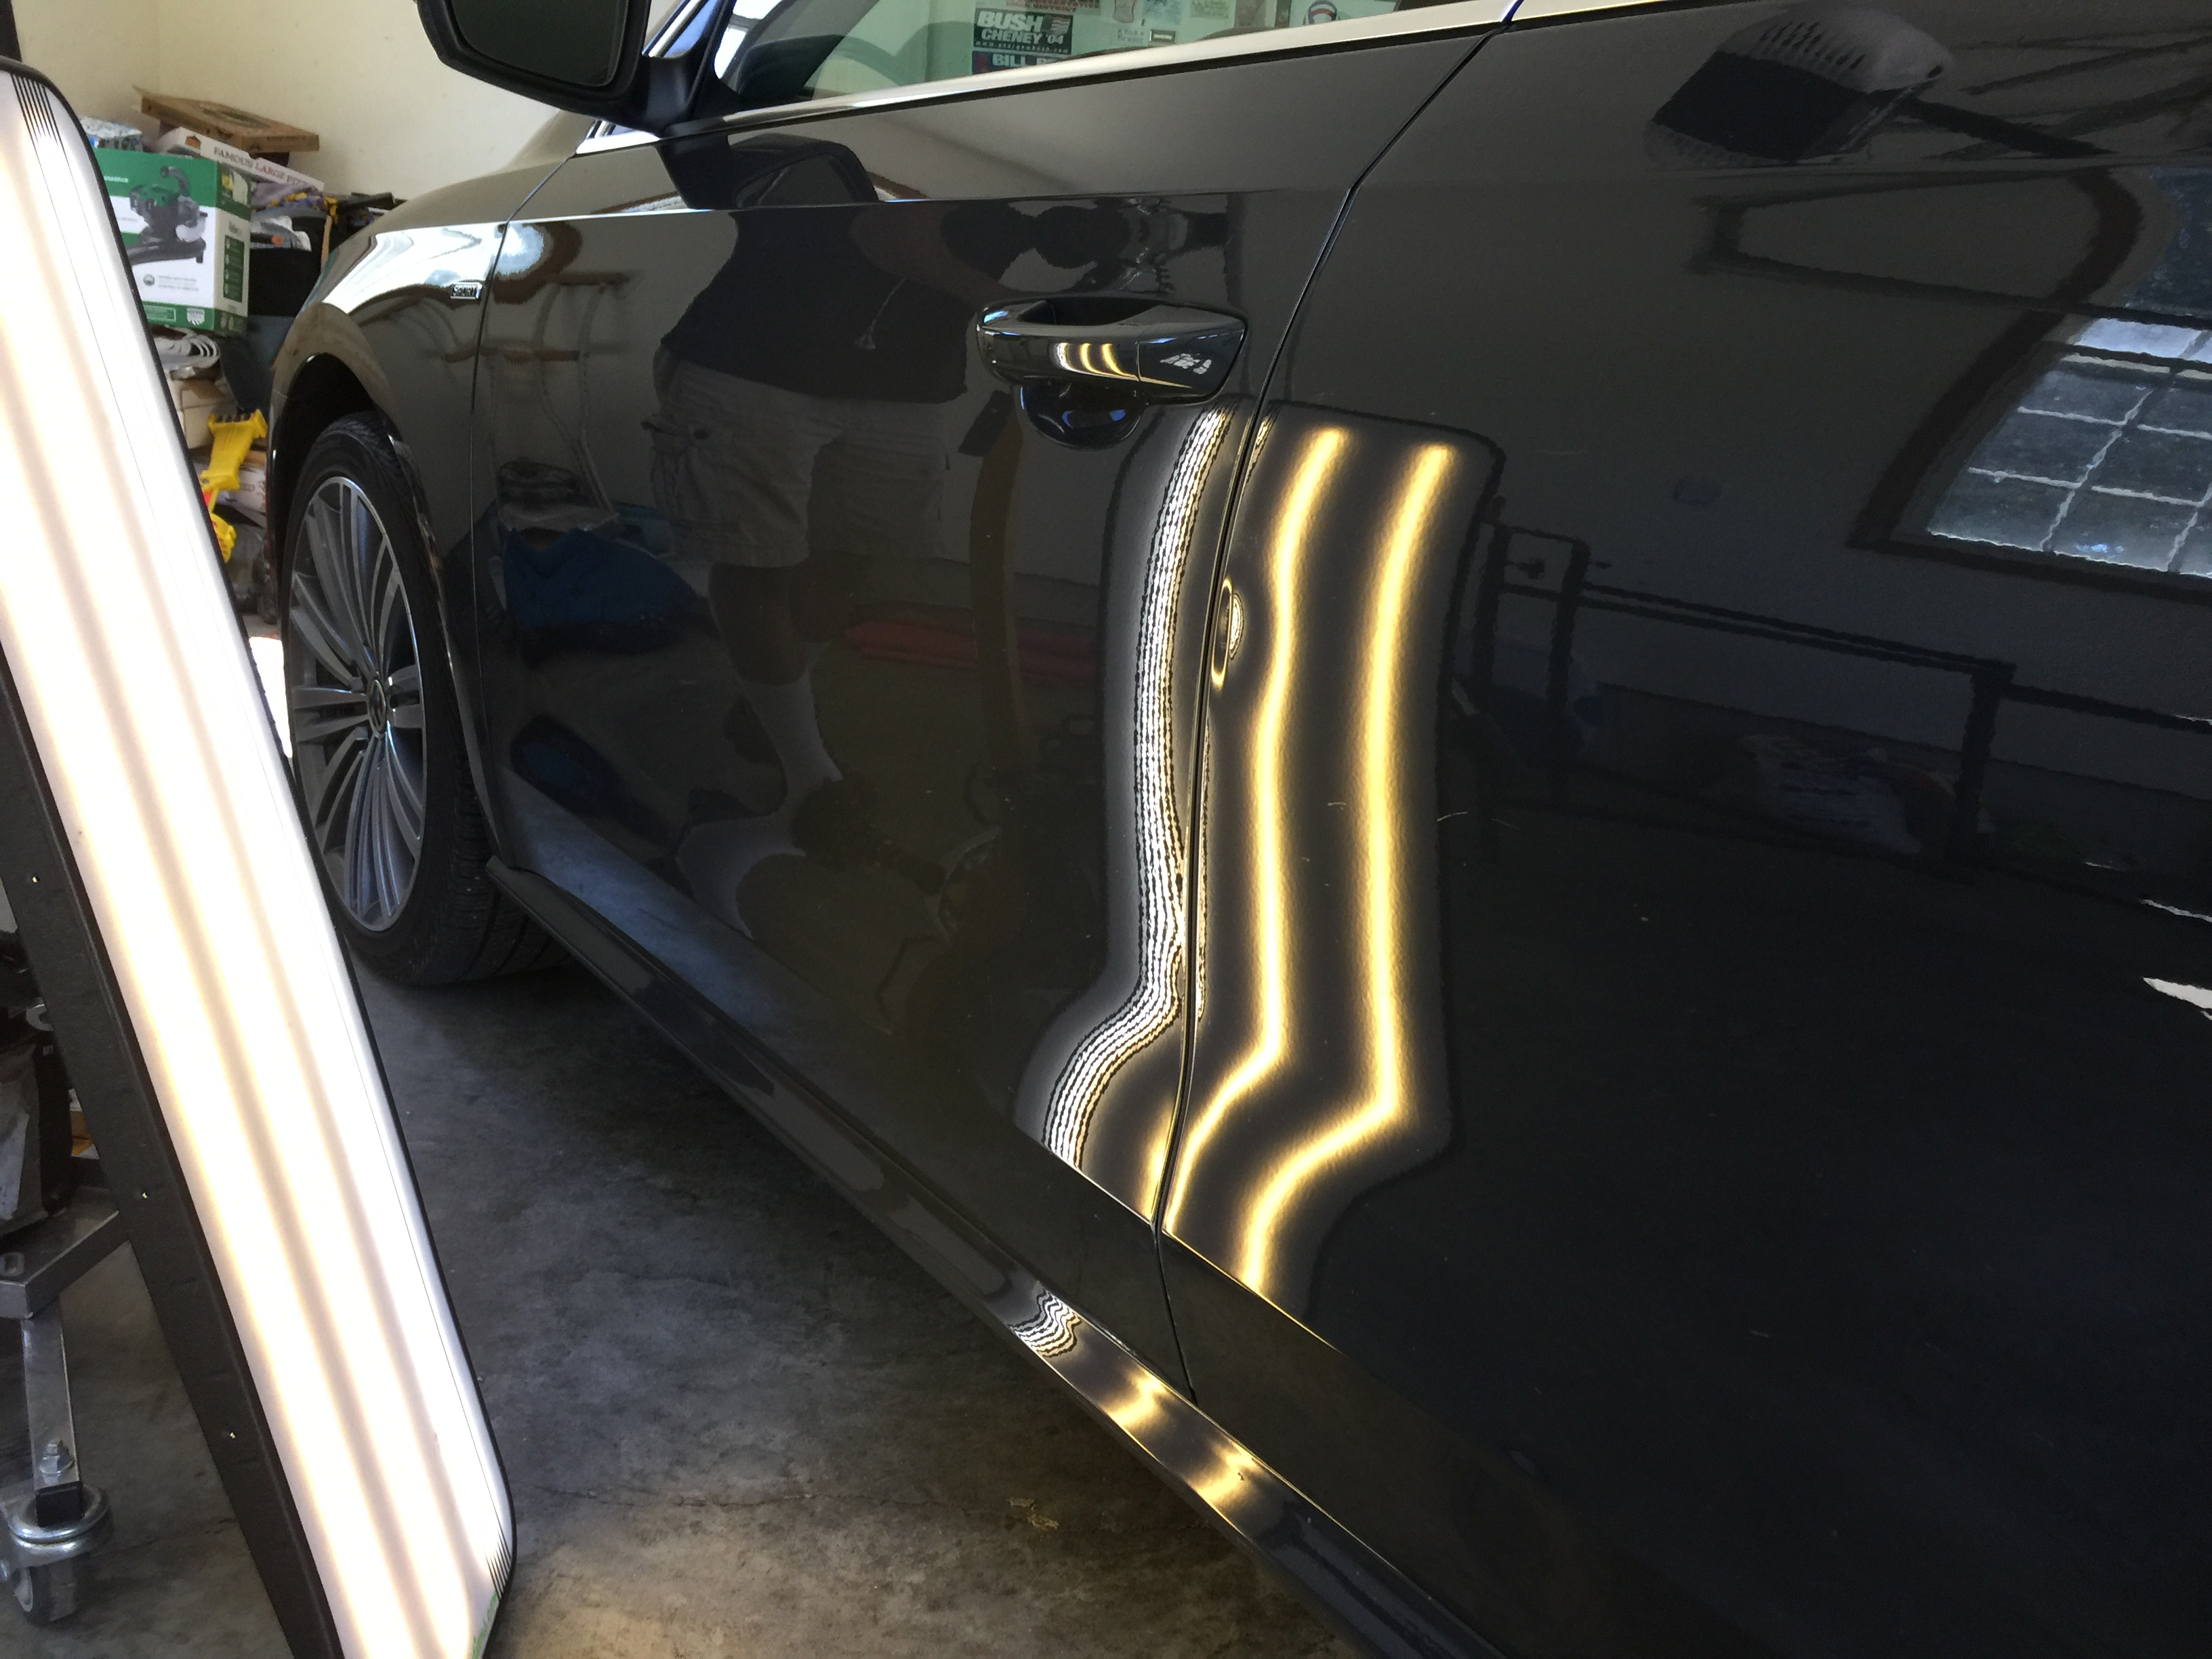 2015 VolksWagon Jetta Dent Removal, Sherman, IL. (near Springfield, IL). Multiple dents and damage, http://217dent.com